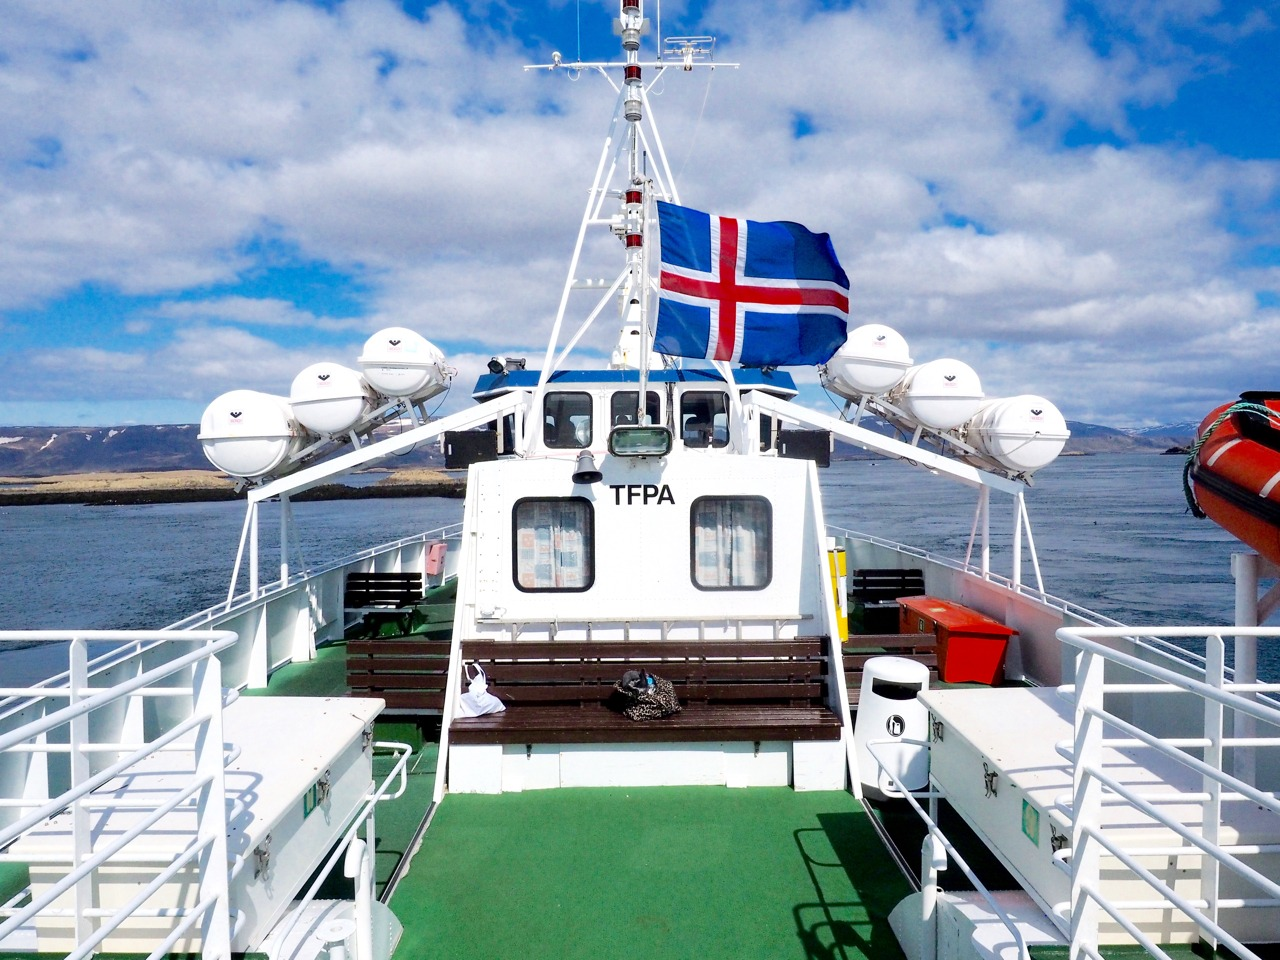 Snaefellsness Peninsula, Stykkishólmur boat trip - The Best Day Trips from Reykjavik